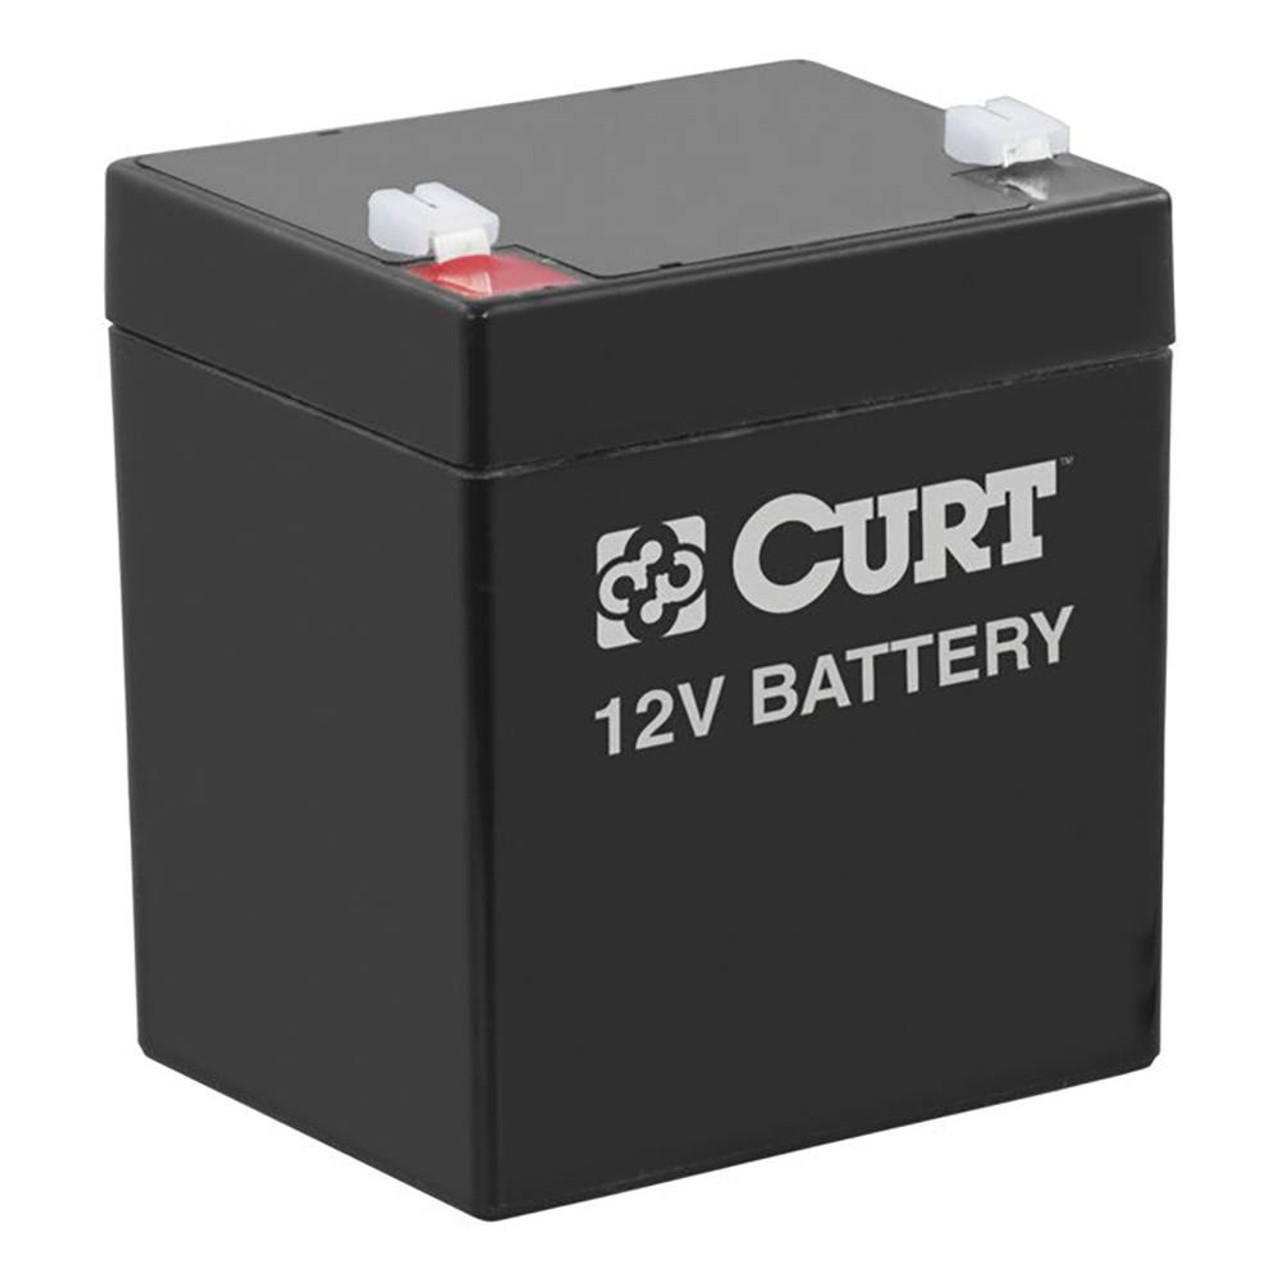 Battery- 12 Volt- 5.0 Amp/Hr. For 1-3 Axle- 4 in. Tall- 3.5 in. Wide- 2.75 in. Deep-